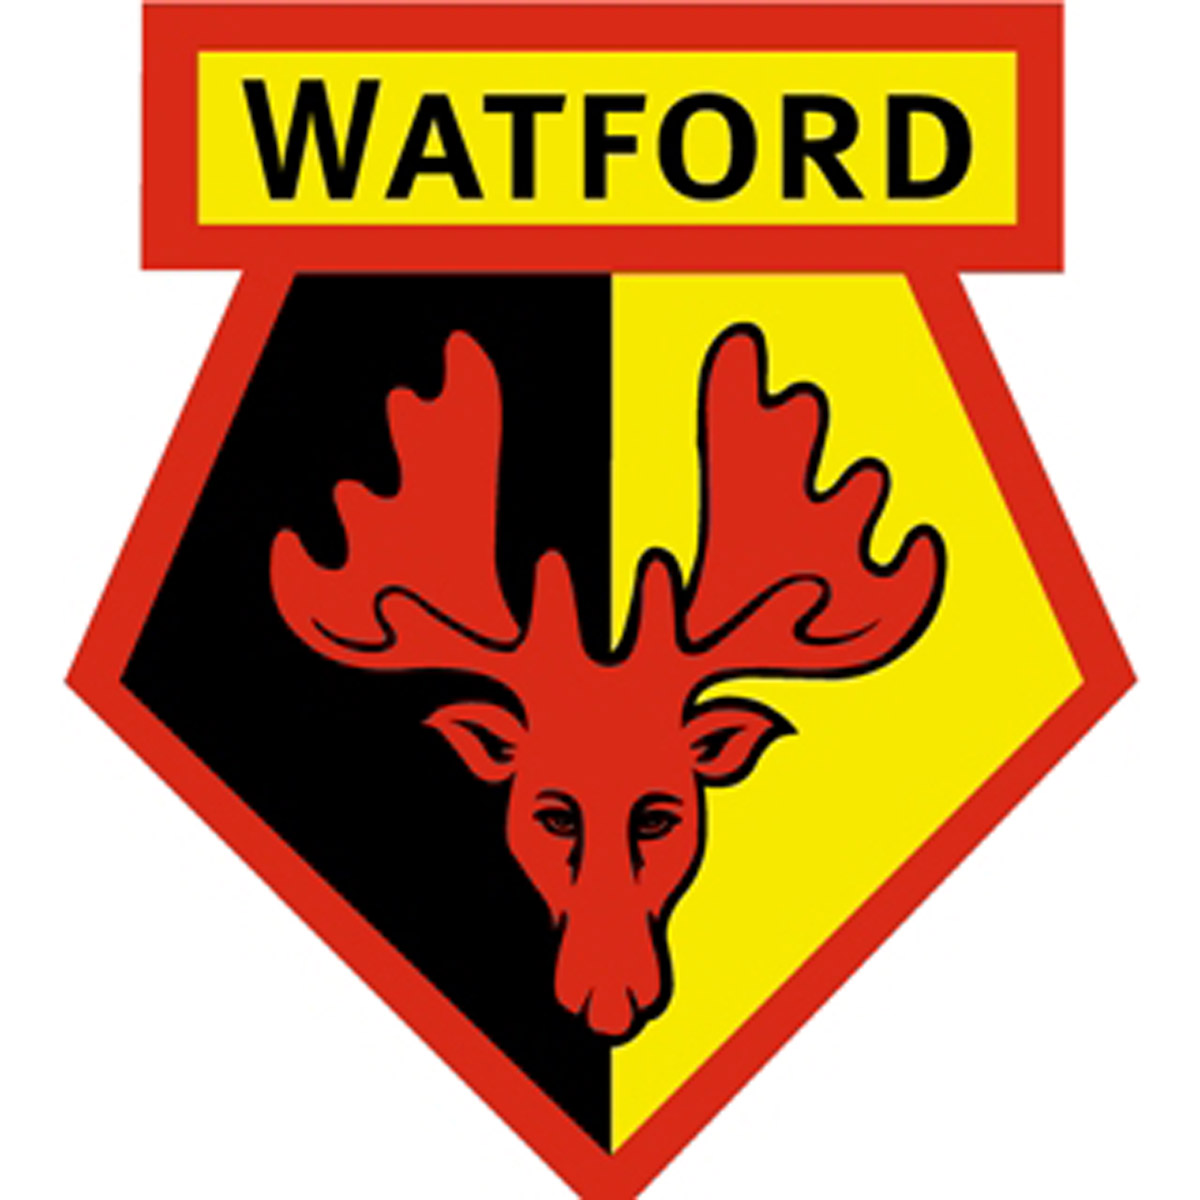 Boreham Wood reduced ticket prices for Watford's friendly with Coventry City